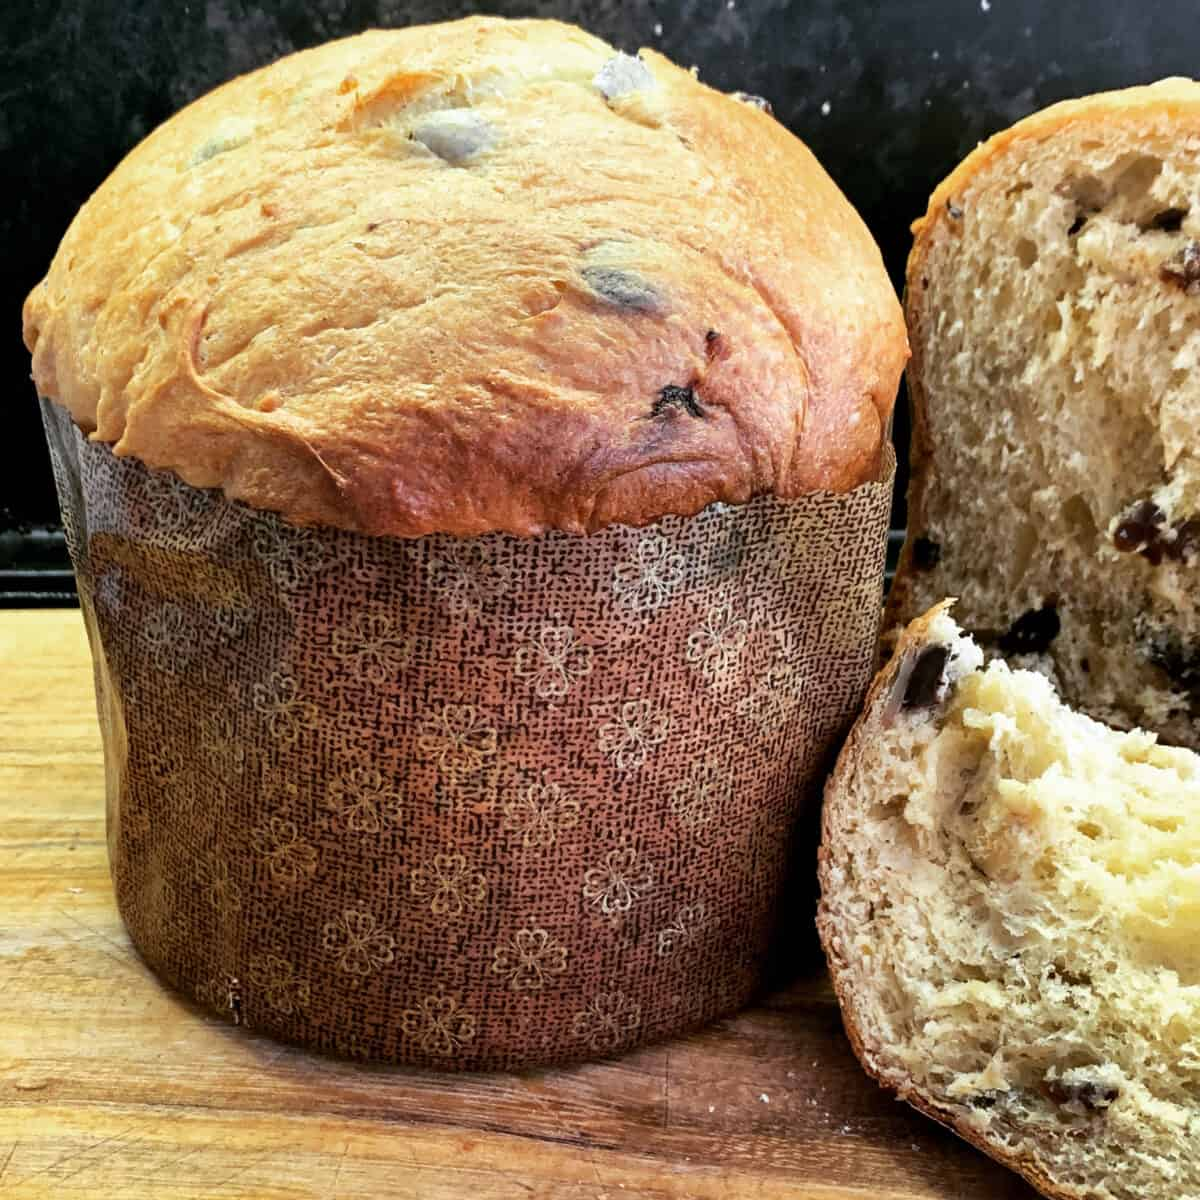 front view of panettone plus slices